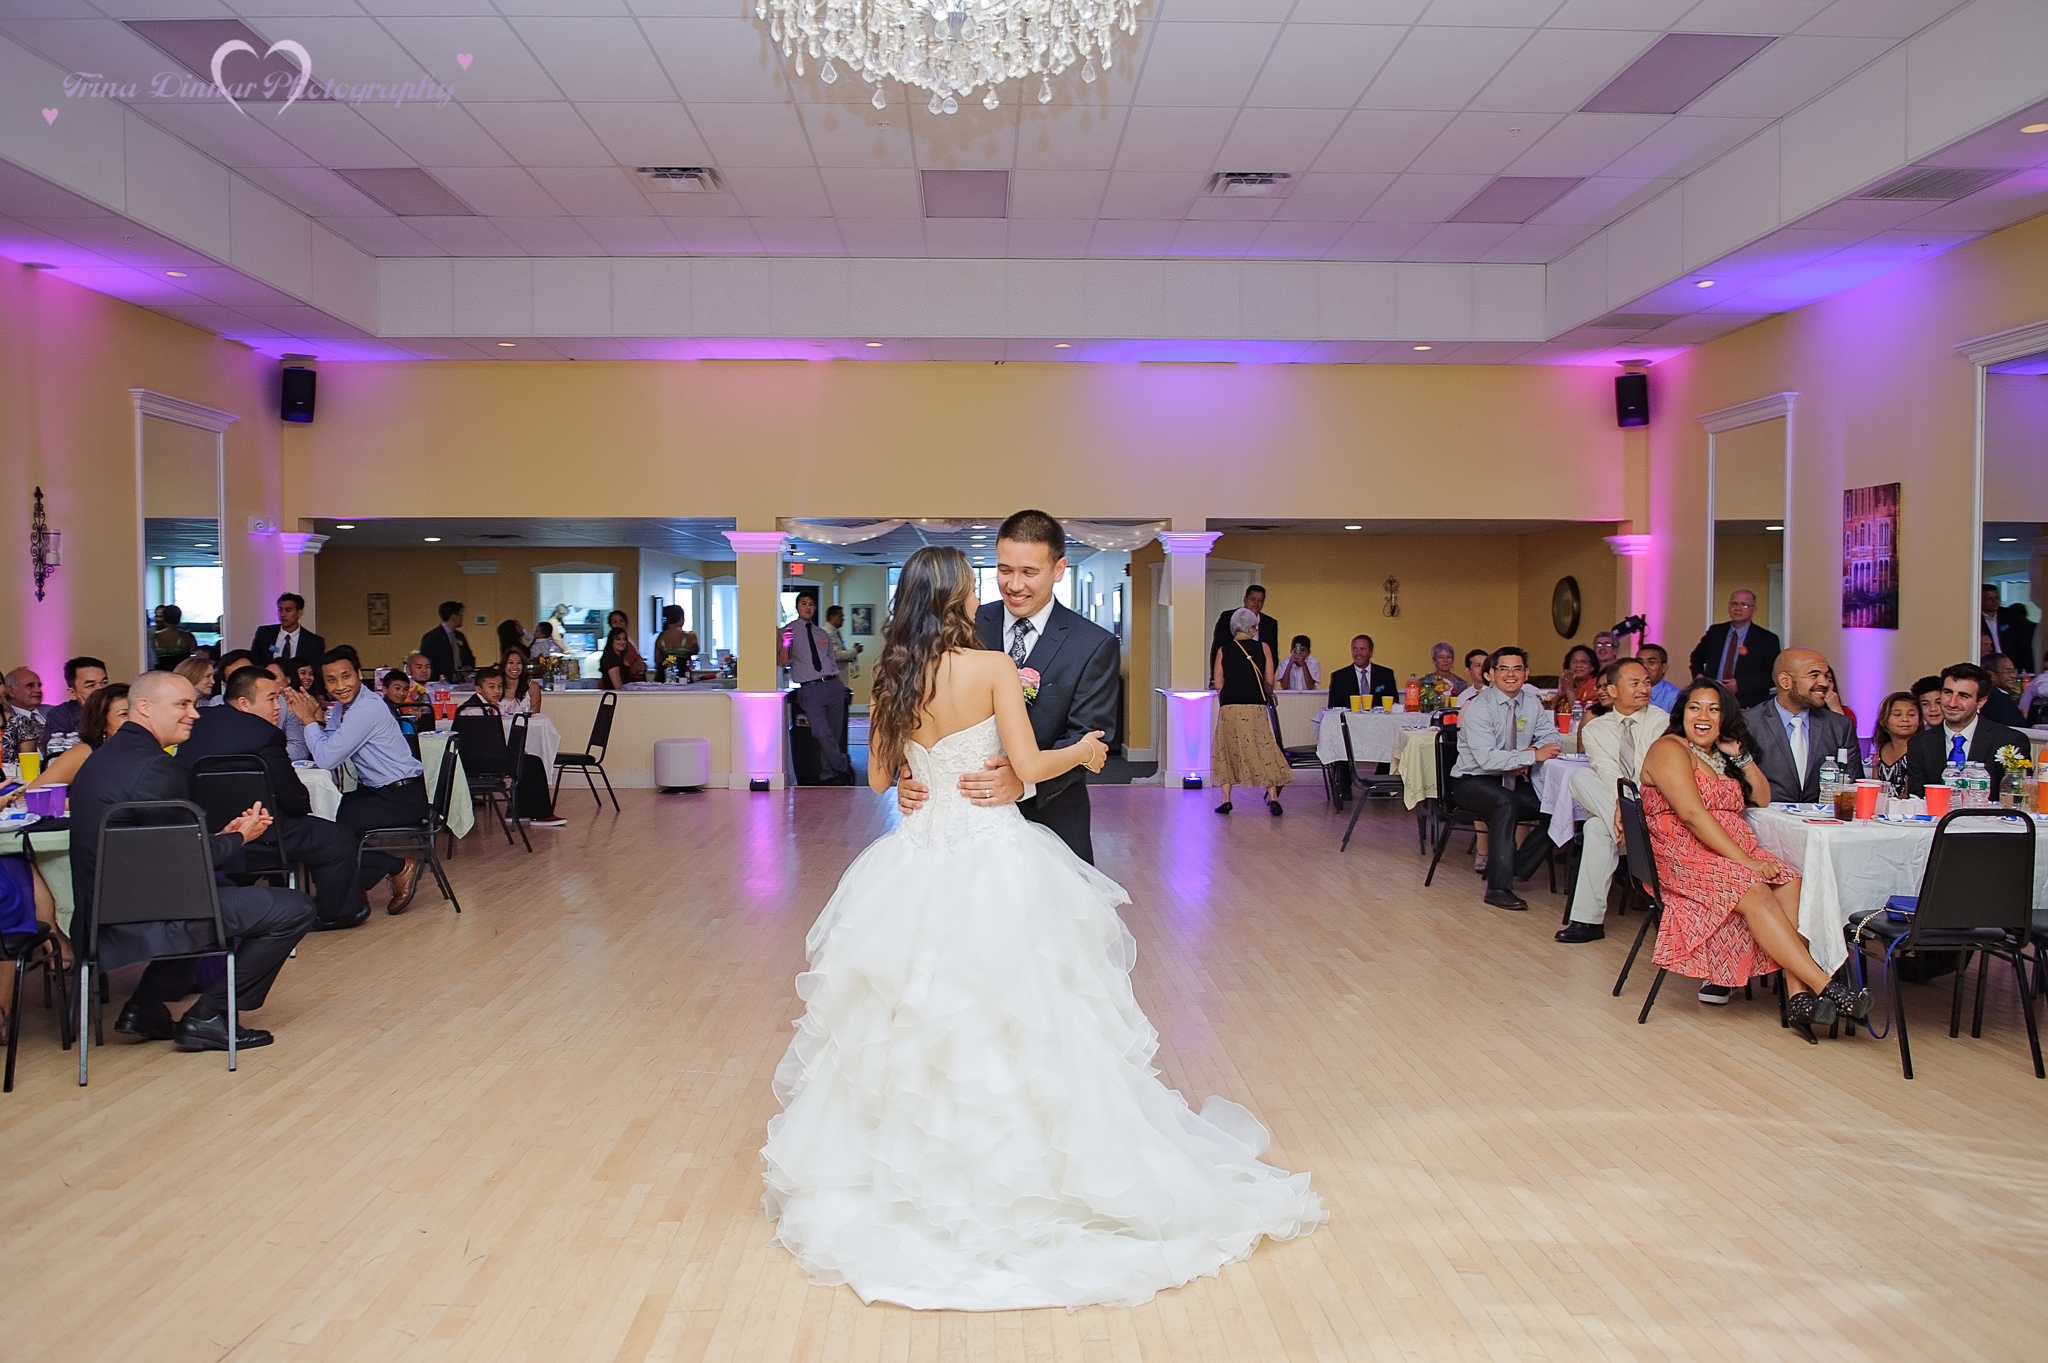 The bride and groom share their first dance at the Avant Dance Center in Westbrook, Maine